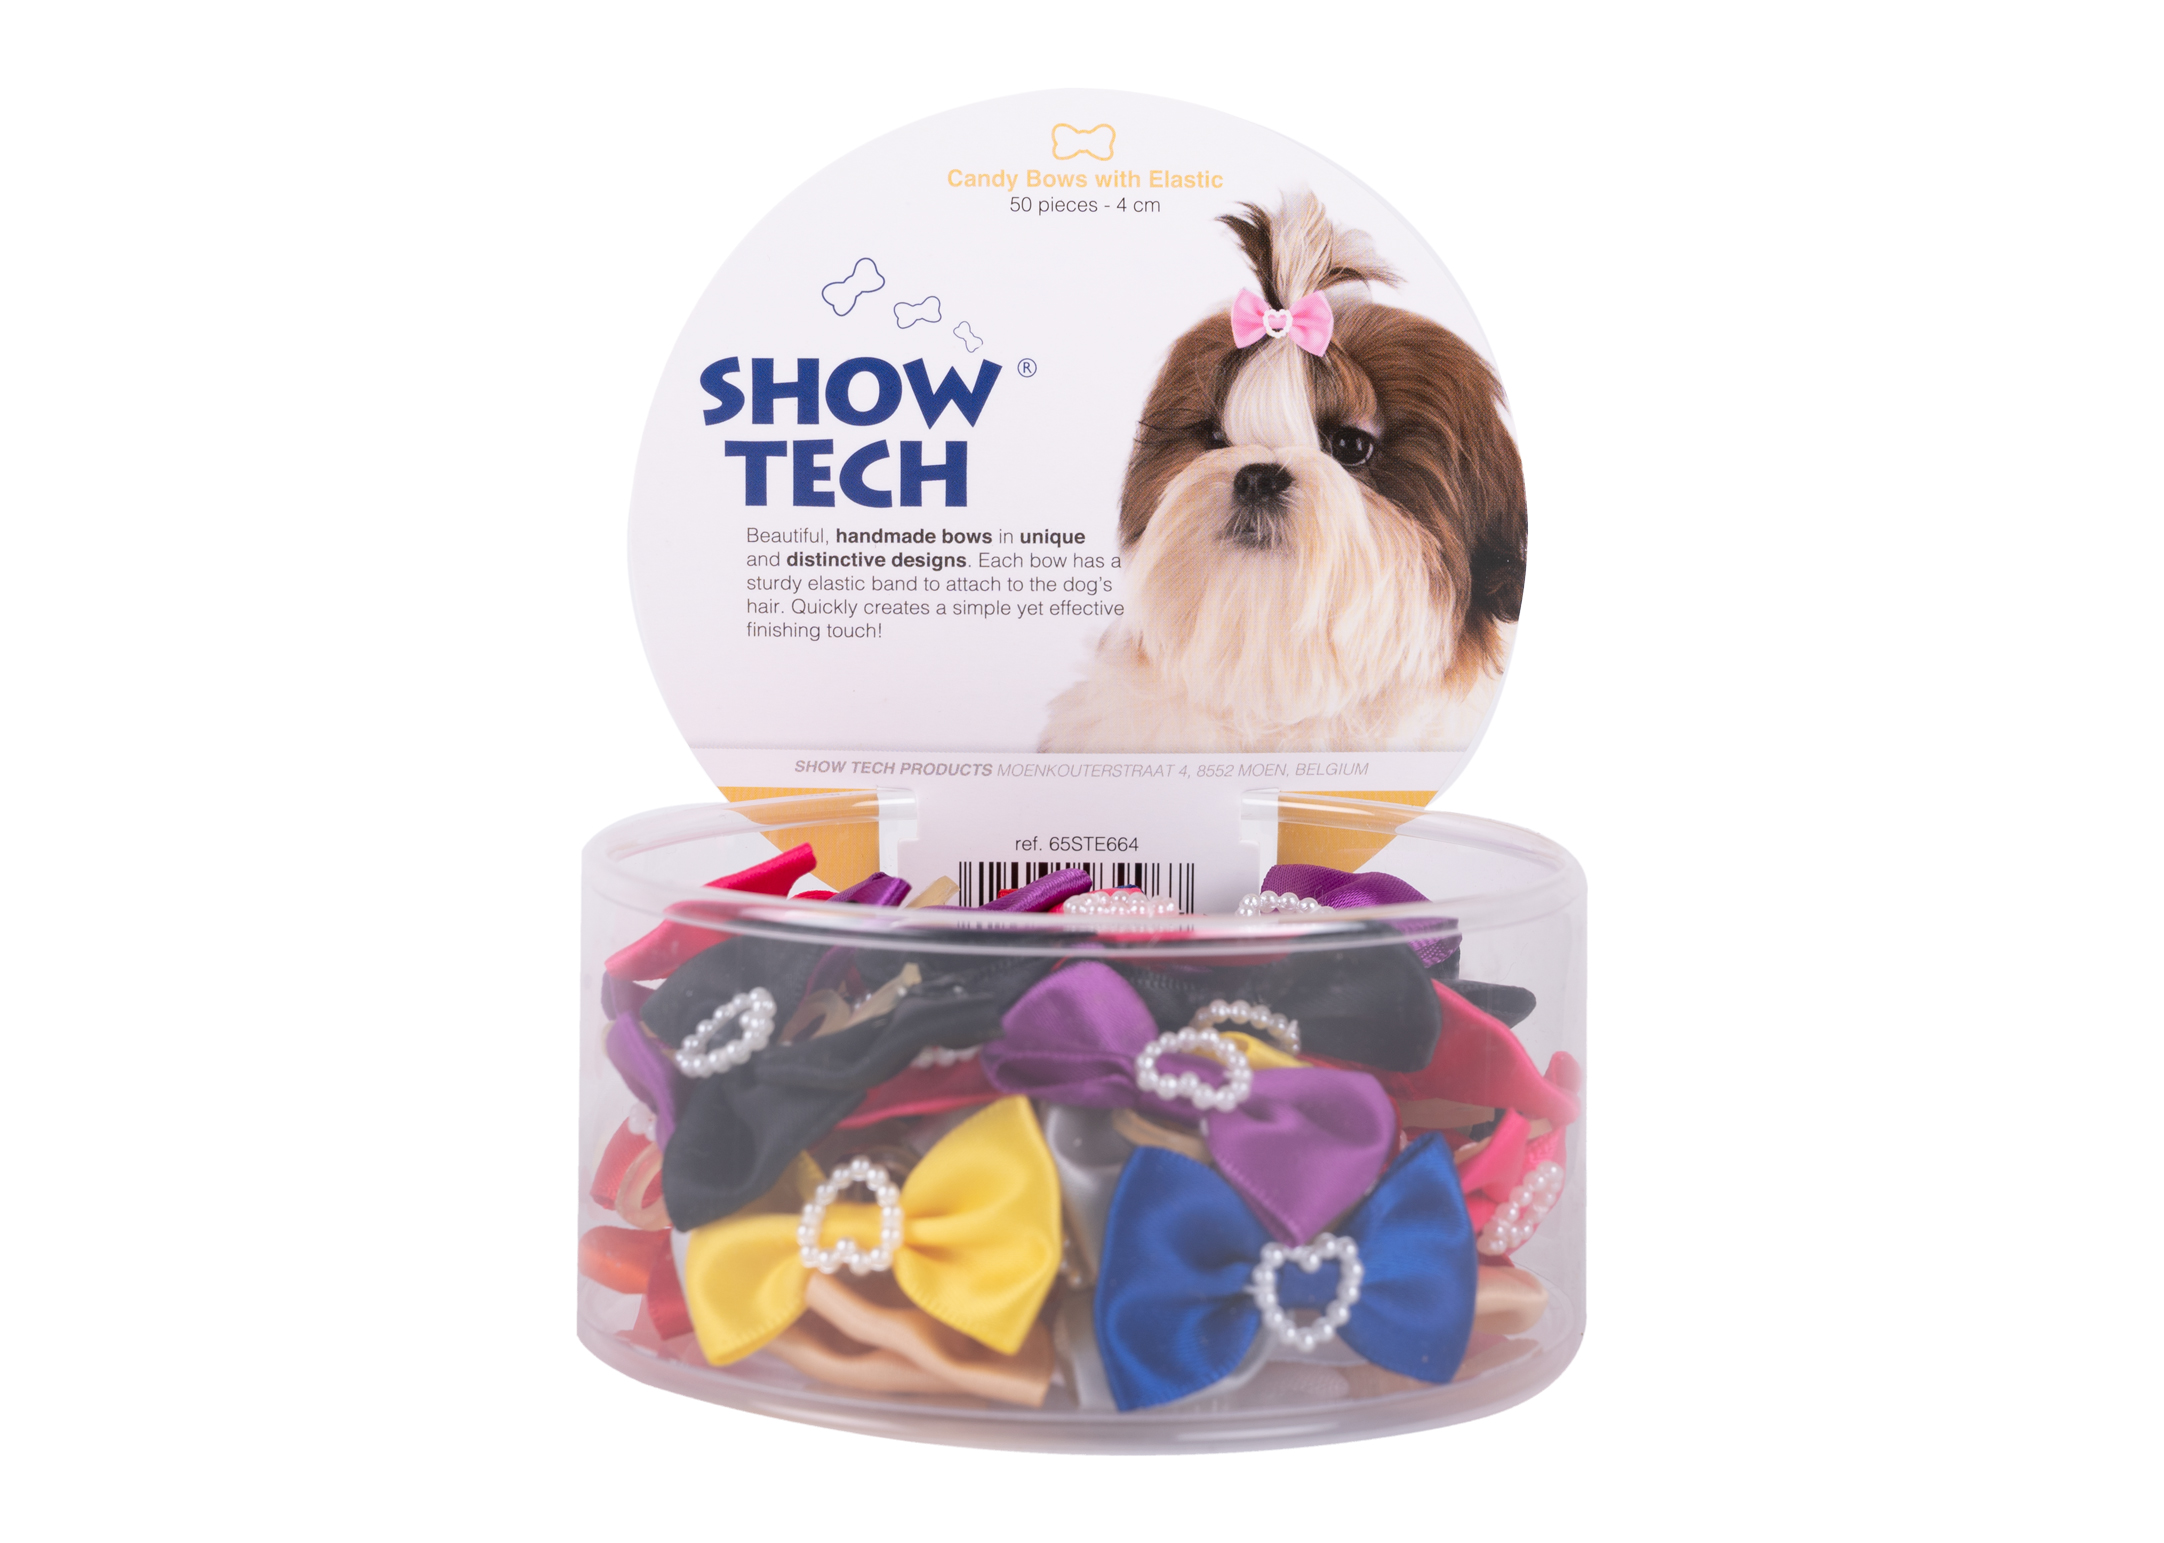 Show Tech Candy Bows with Elastic 50 pcs Bows